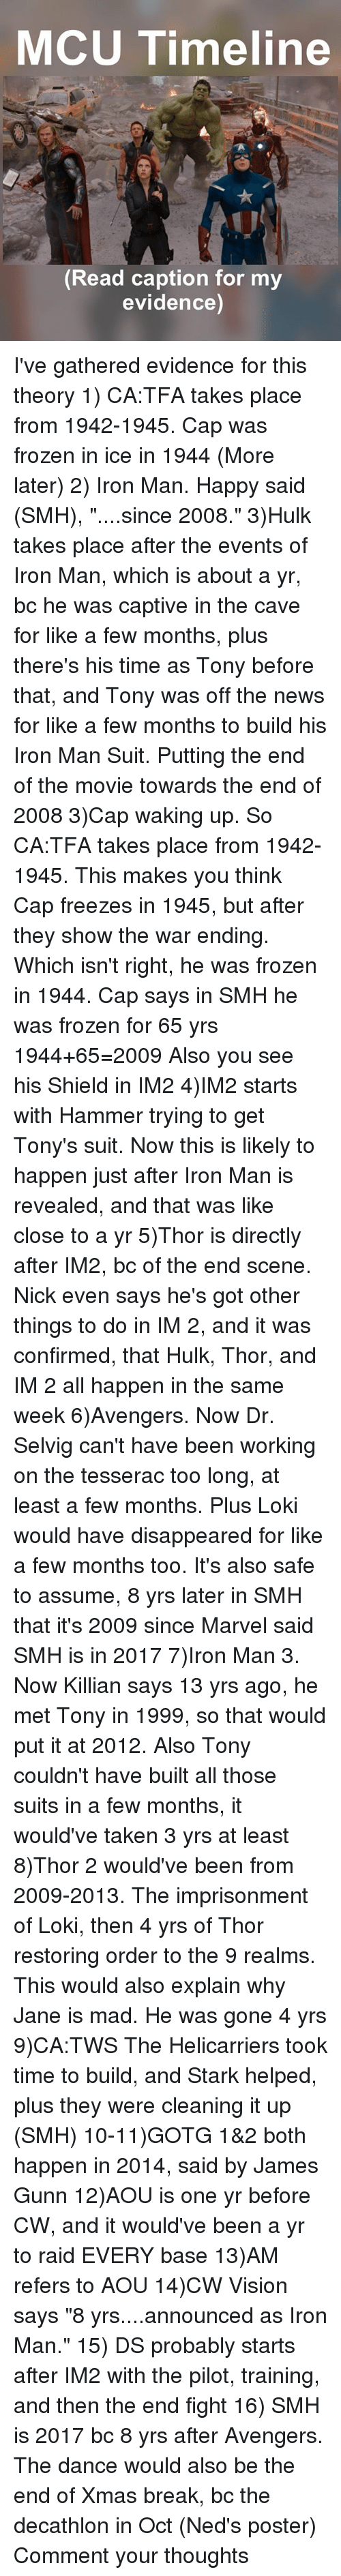 """posterity: MCU Timeline  A,  Read caption for my  evidence) I've gathered evidence for this theory 1) CA:TFA takes place from 1942-1945. Cap was frozen in ice in 1944 (More later) 2) Iron Man. Happy said (SMH), """"....since 2008."""" 3)Hulk takes place after the events of Iron Man, which is about a yr, bc he was captive in the cave for like a few months, plus there's his time as Tony before that, and Tony was off the news for like a few months to build his Iron Man Suit. Putting the end of the movie towards the end of 2008 3)Cap waking up. So CA:TFA takes place from 1942-1945. This makes you think Cap freezes in 1945, but after they show the war ending. Which isn't right, he was frozen in 1944. Cap says in SMH he was frozen for 65 yrs 1944+65=2009 Also you see his Shield in IM2 4)IM2 starts with Hammer trying to get Tony's suit. Now this is likely to happen just after Iron Man is revealed, and that was like close to a yr 5)Thor is directly after IM2, bc of the end scene. Nick even says he's got other things to do in IM 2, and it was confirmed, that Hulk, Thor, and IM 2 all happen in the same week 6)Avengers. Now Dr. Selvig can't have been working on the tesserac too long, at least a few months. Plus Loki would have disappeared for like a few months too. It's also safe to assume, 8 yrs later in SMH that it's 2009 since Marvel said SMH is in 2017 7)Iron Man 3. Now Killian says 13 yrs ago, he met Tony in 1999, so that would put it at 2012. Also Tony couldn't have built all those suits in a few months, it would've taken 3 yrs at least 8)Thor 2 would've been from 2009-2013. The imprisonment of Loki, then 4 yrs of Thor restoring order to the 9 realms. This would also explain why Jane is mad. He was gone 4 yrs 9)CA:TWS The Helicarriers took time to build, and Stark helped, plus they were cleaning it up (SMH) 10-11)GOTG 1&2 both happen in 2014, said by James Gunn 12)AOU is one yr before CW, and it would've been a yr to raid EVERY base 13)AM refers to AOU 14)CW Vision says """"8 yrs"""